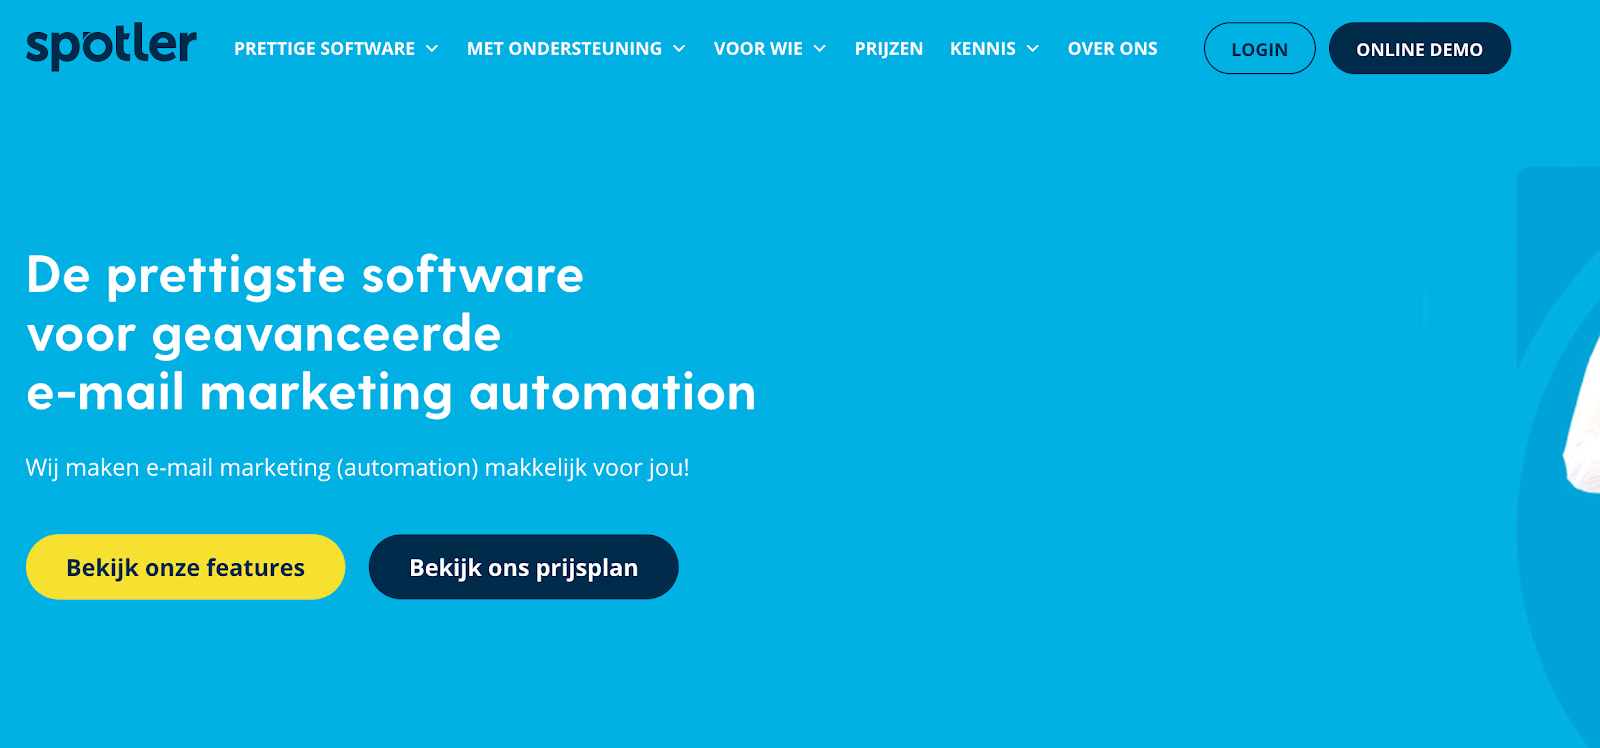 e-mail marketing software voor webshops